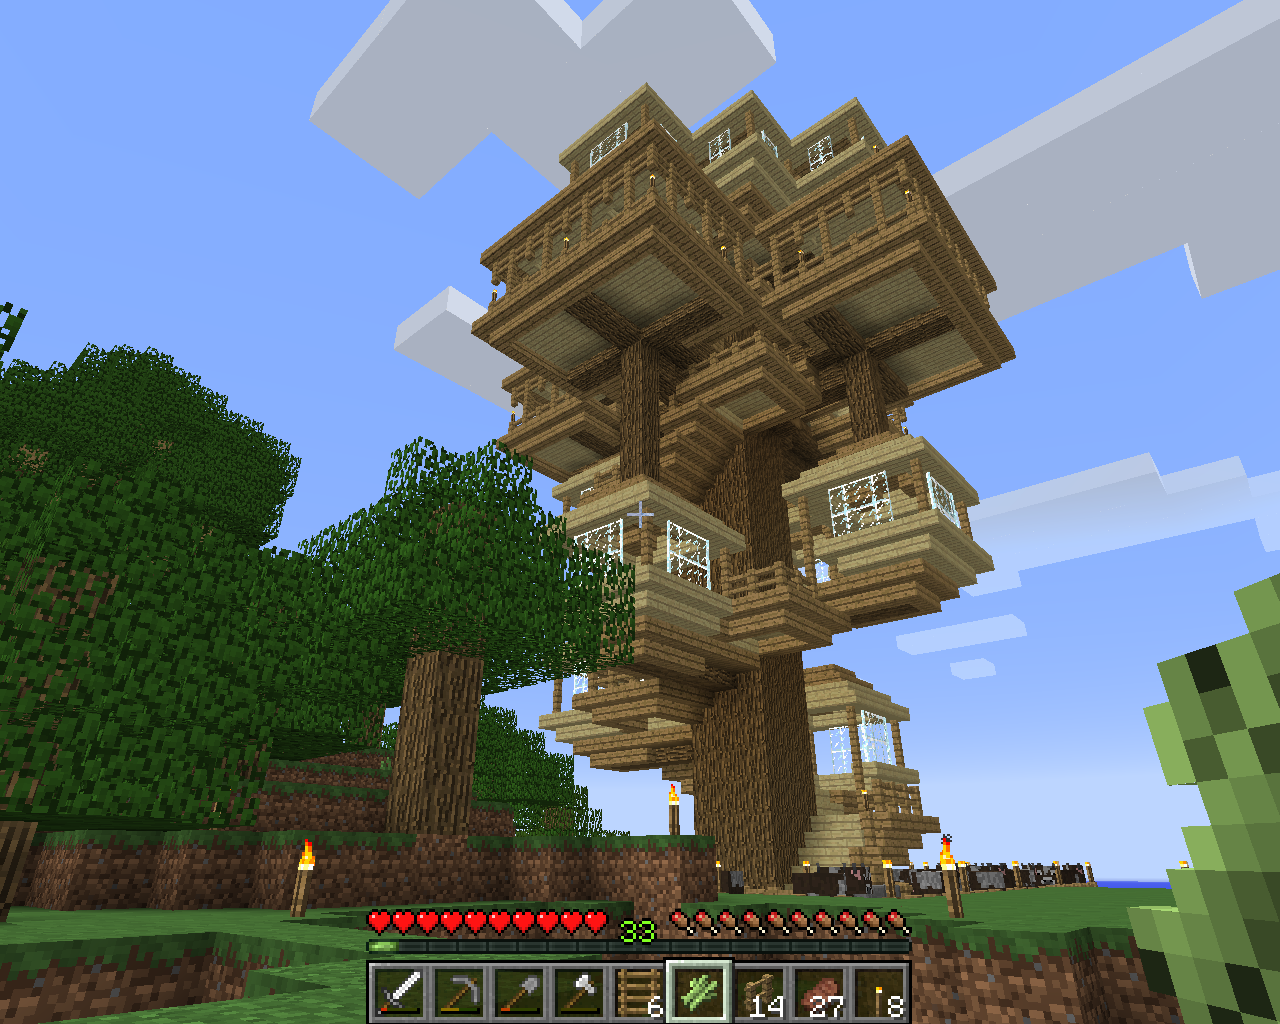 One of those moments when you look up and wonder 39 what - Casa del arbol minecraft ...